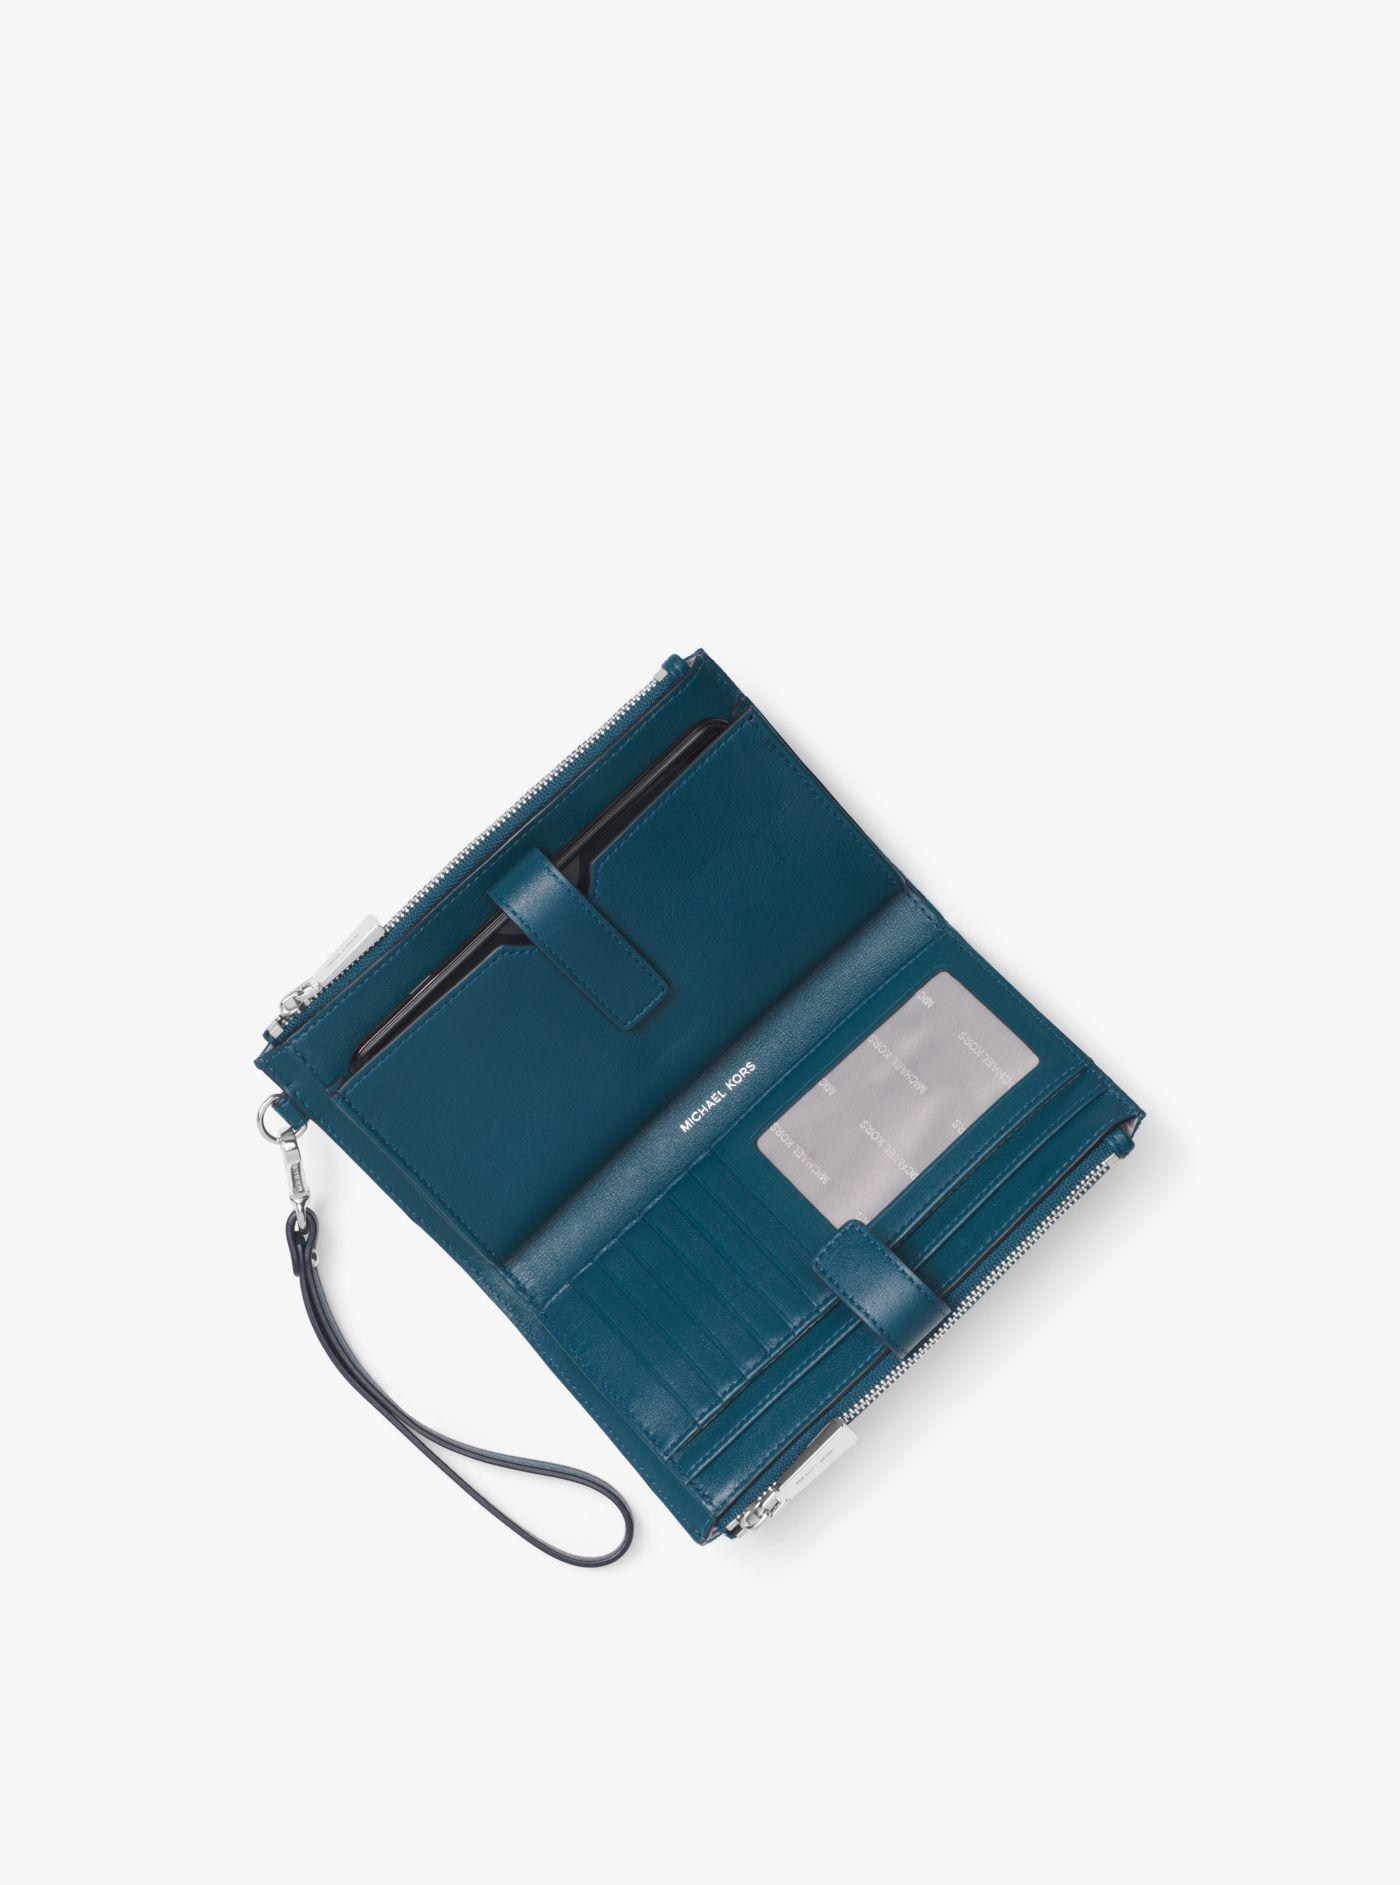 f2e09c106408 Michael Kors Adele Mixed-media Smartphone Wallet in Blue - Lyst